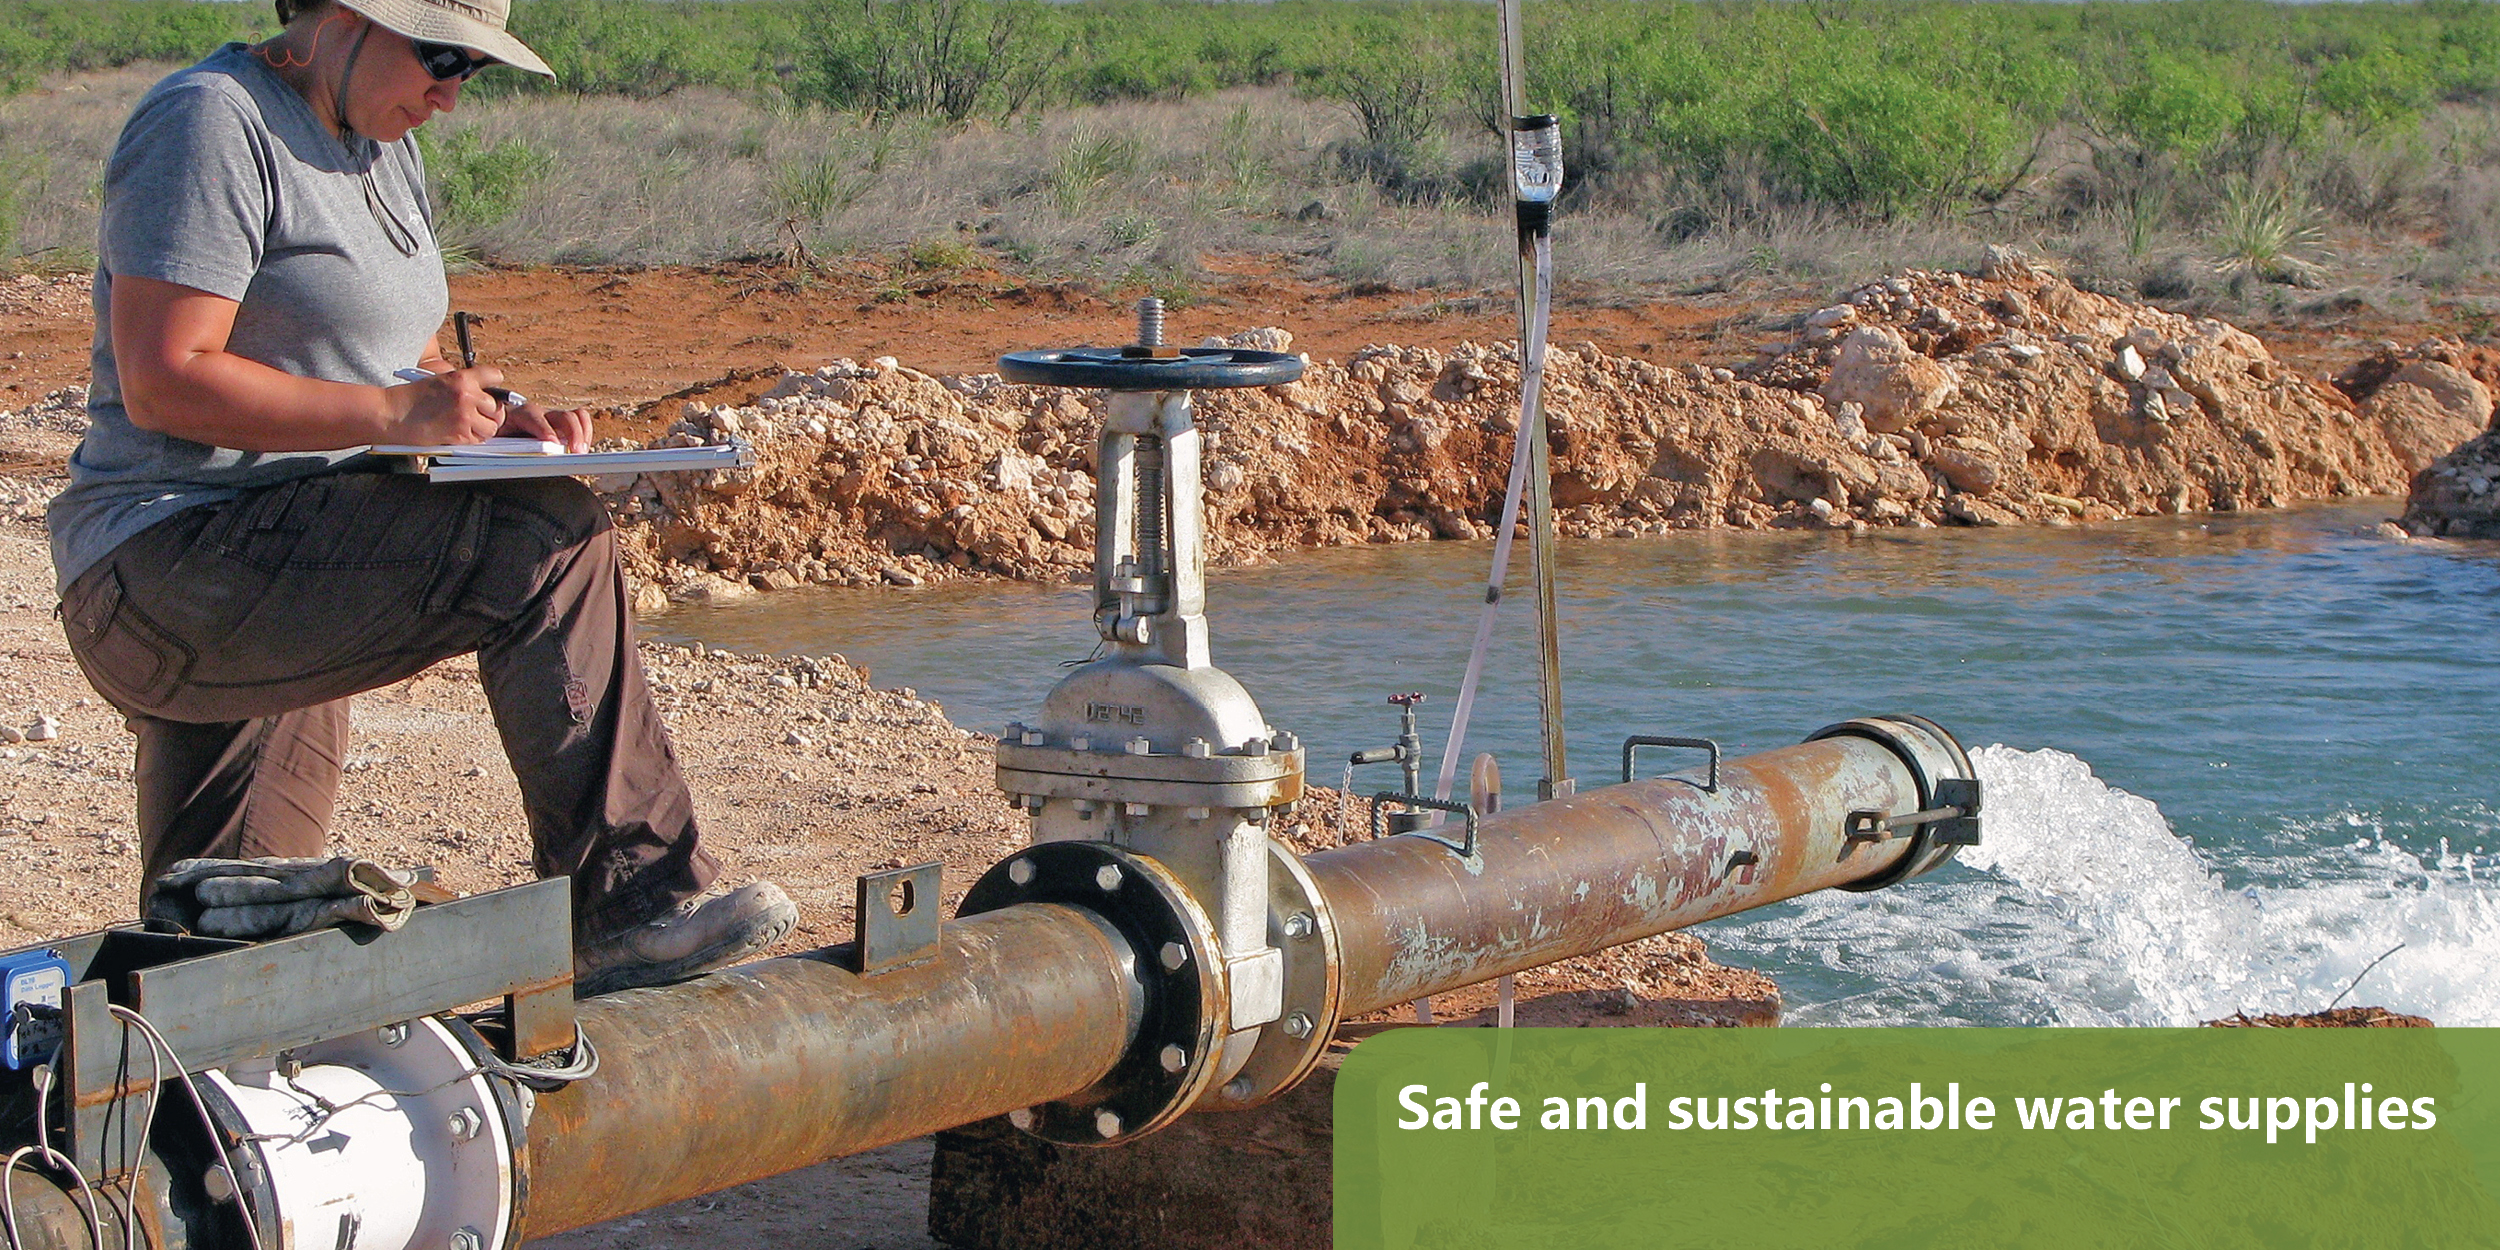 Safe and sustainable water supplies